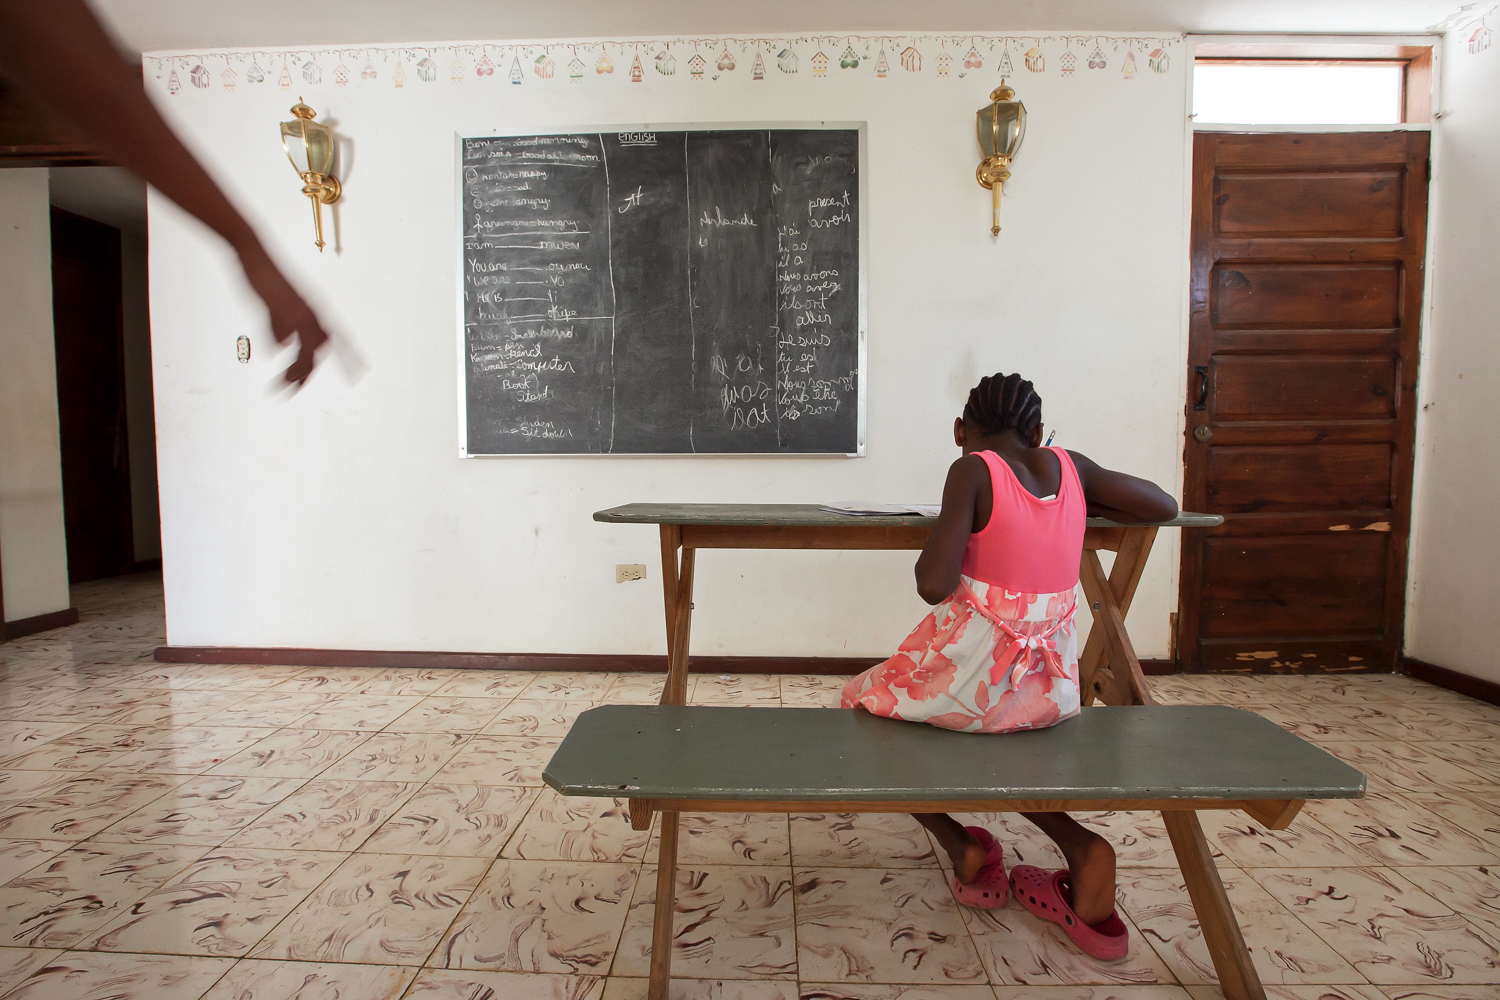 Children from a nearby orphanage also attend school regularly in Gramothe. On a day off from classes, a girl reviews lessons in the orphanage's common room.